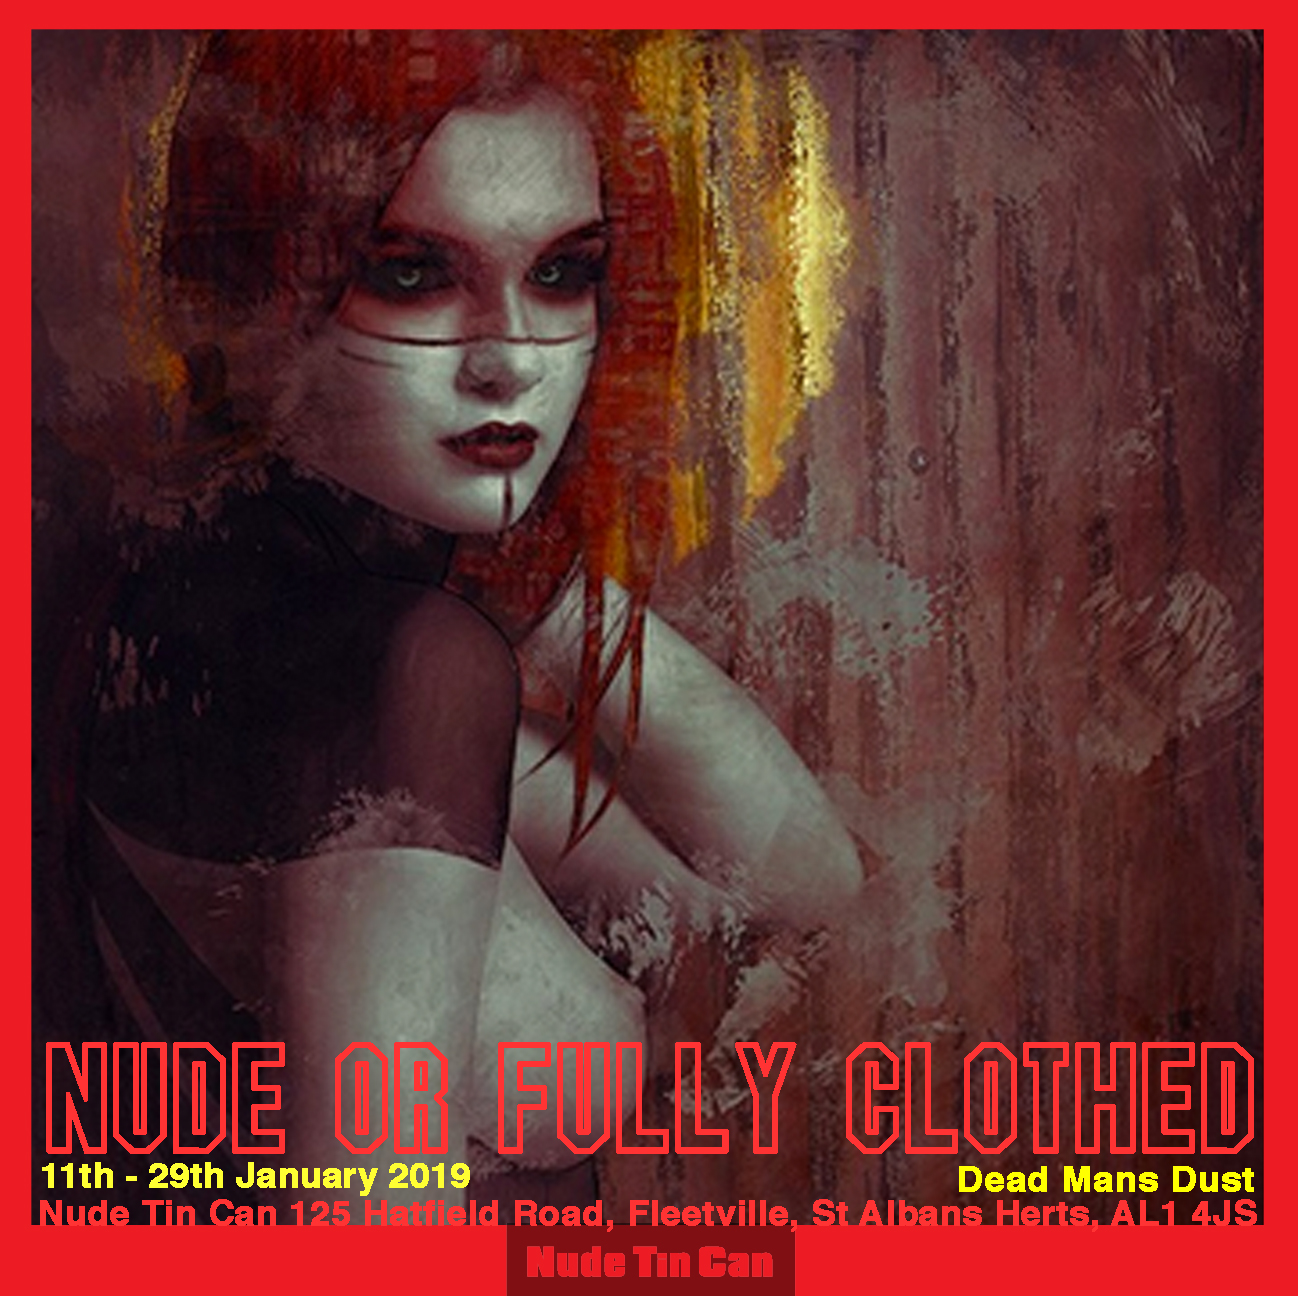 Nude or Fully Clothed Exhibition